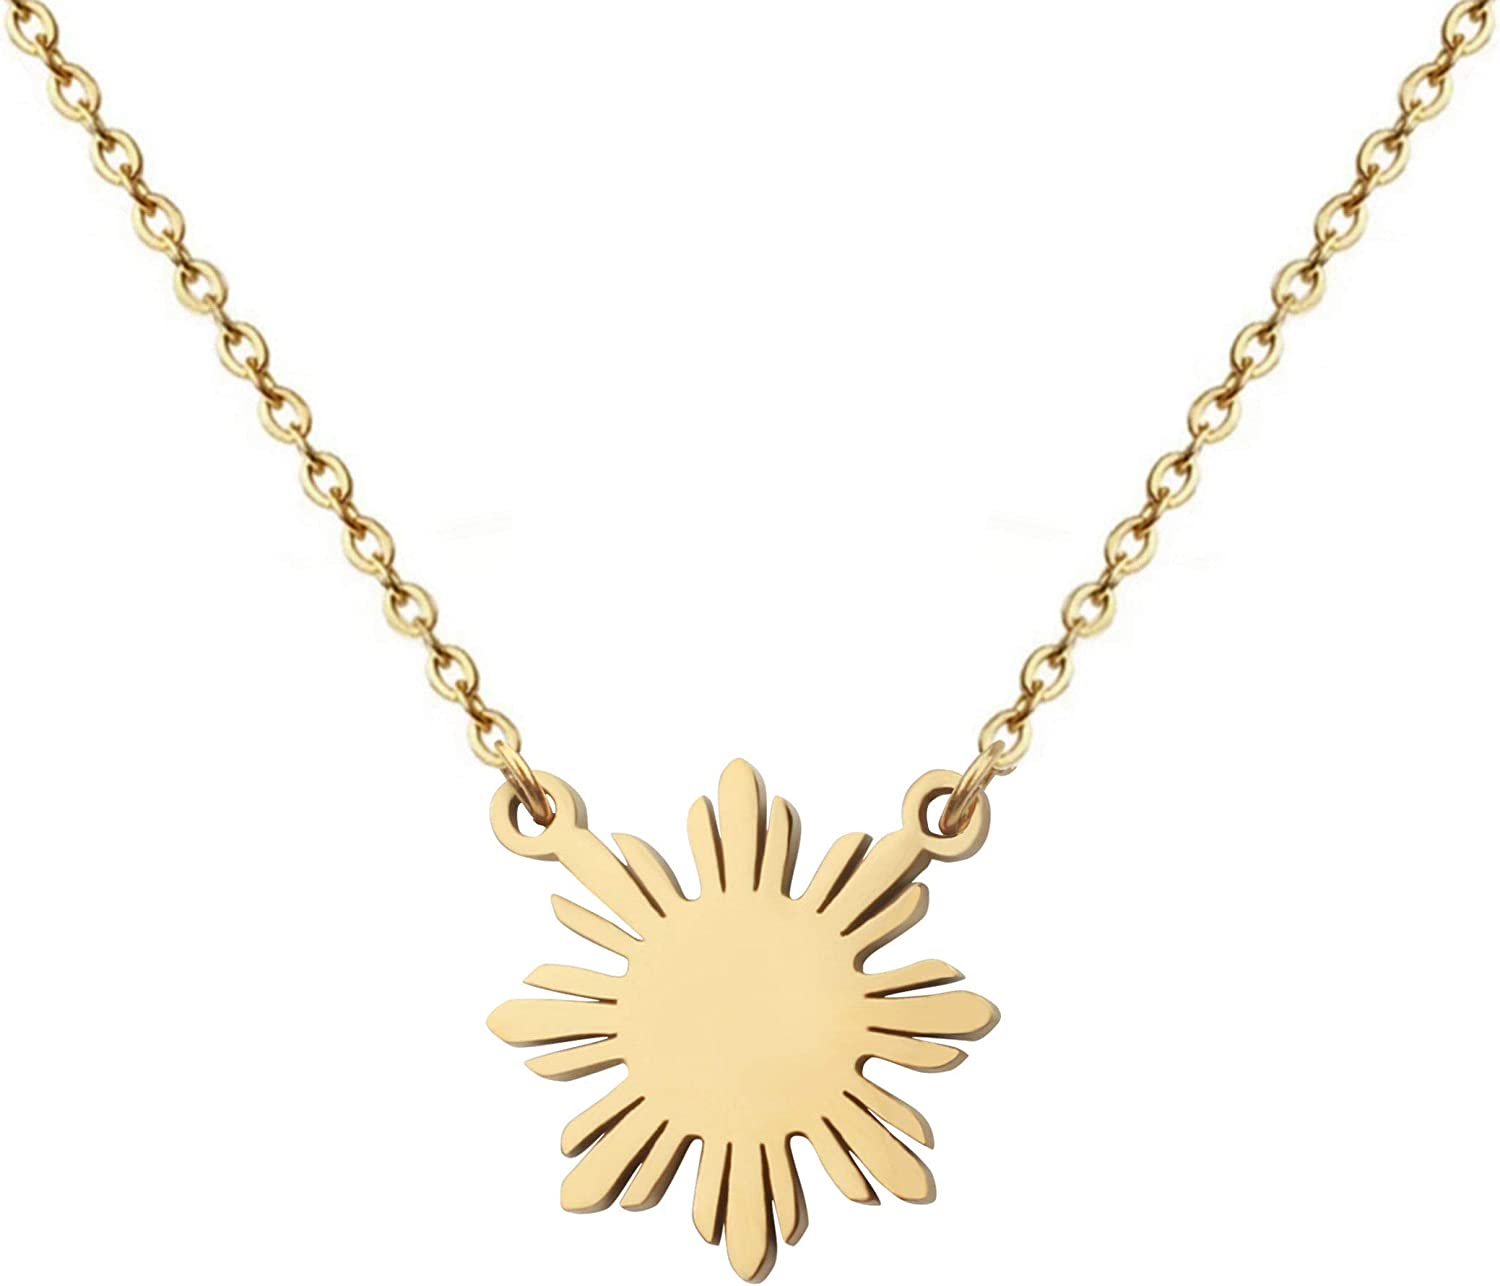 Philippine favorite Sun Necklace Filipino Charm Jewelry Pride Pinoy Easy-to-use